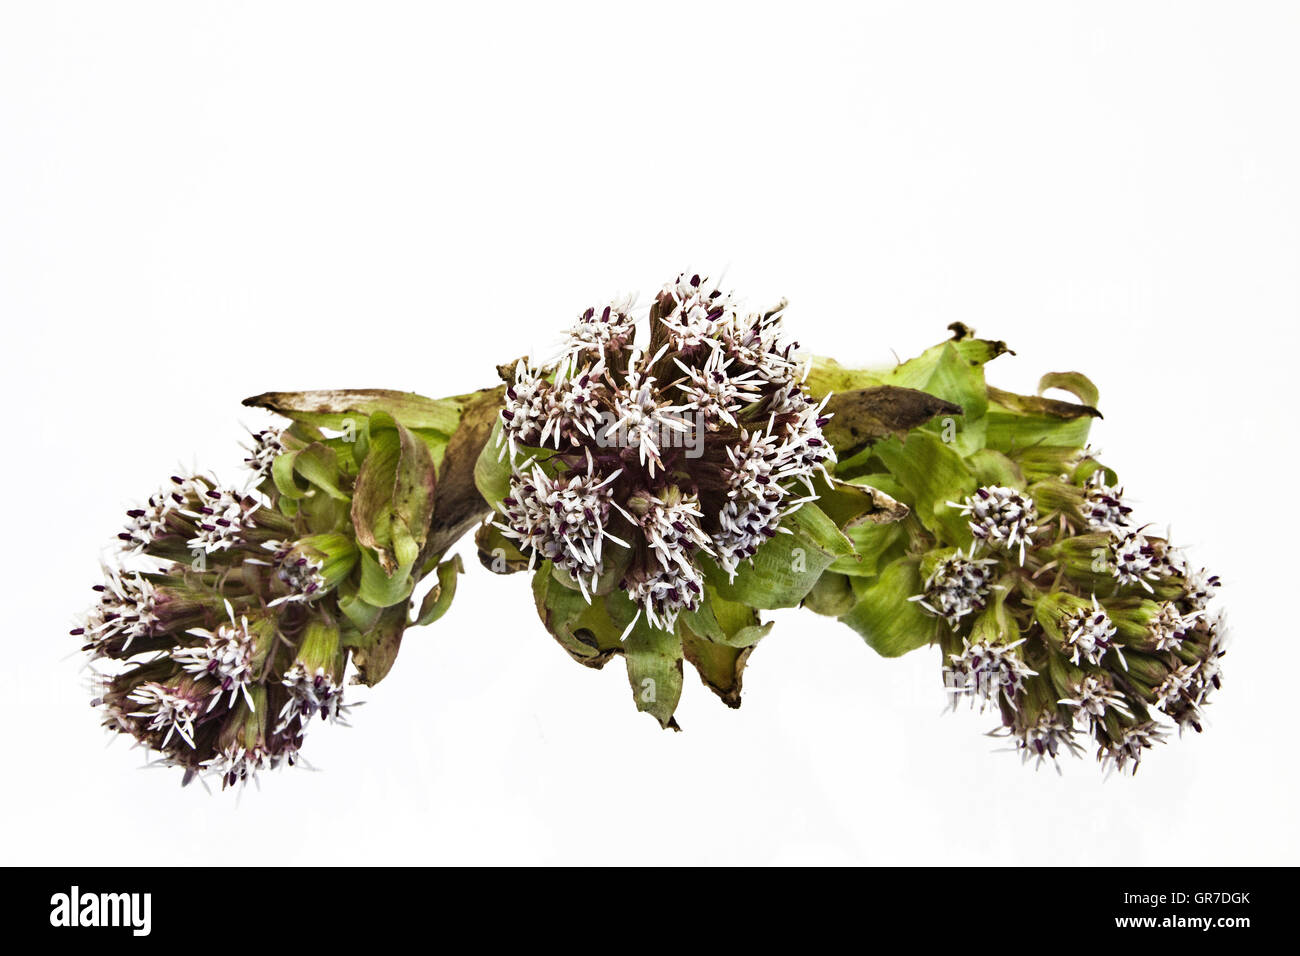 Petasites Paradoxus Against White Background - Stock Image